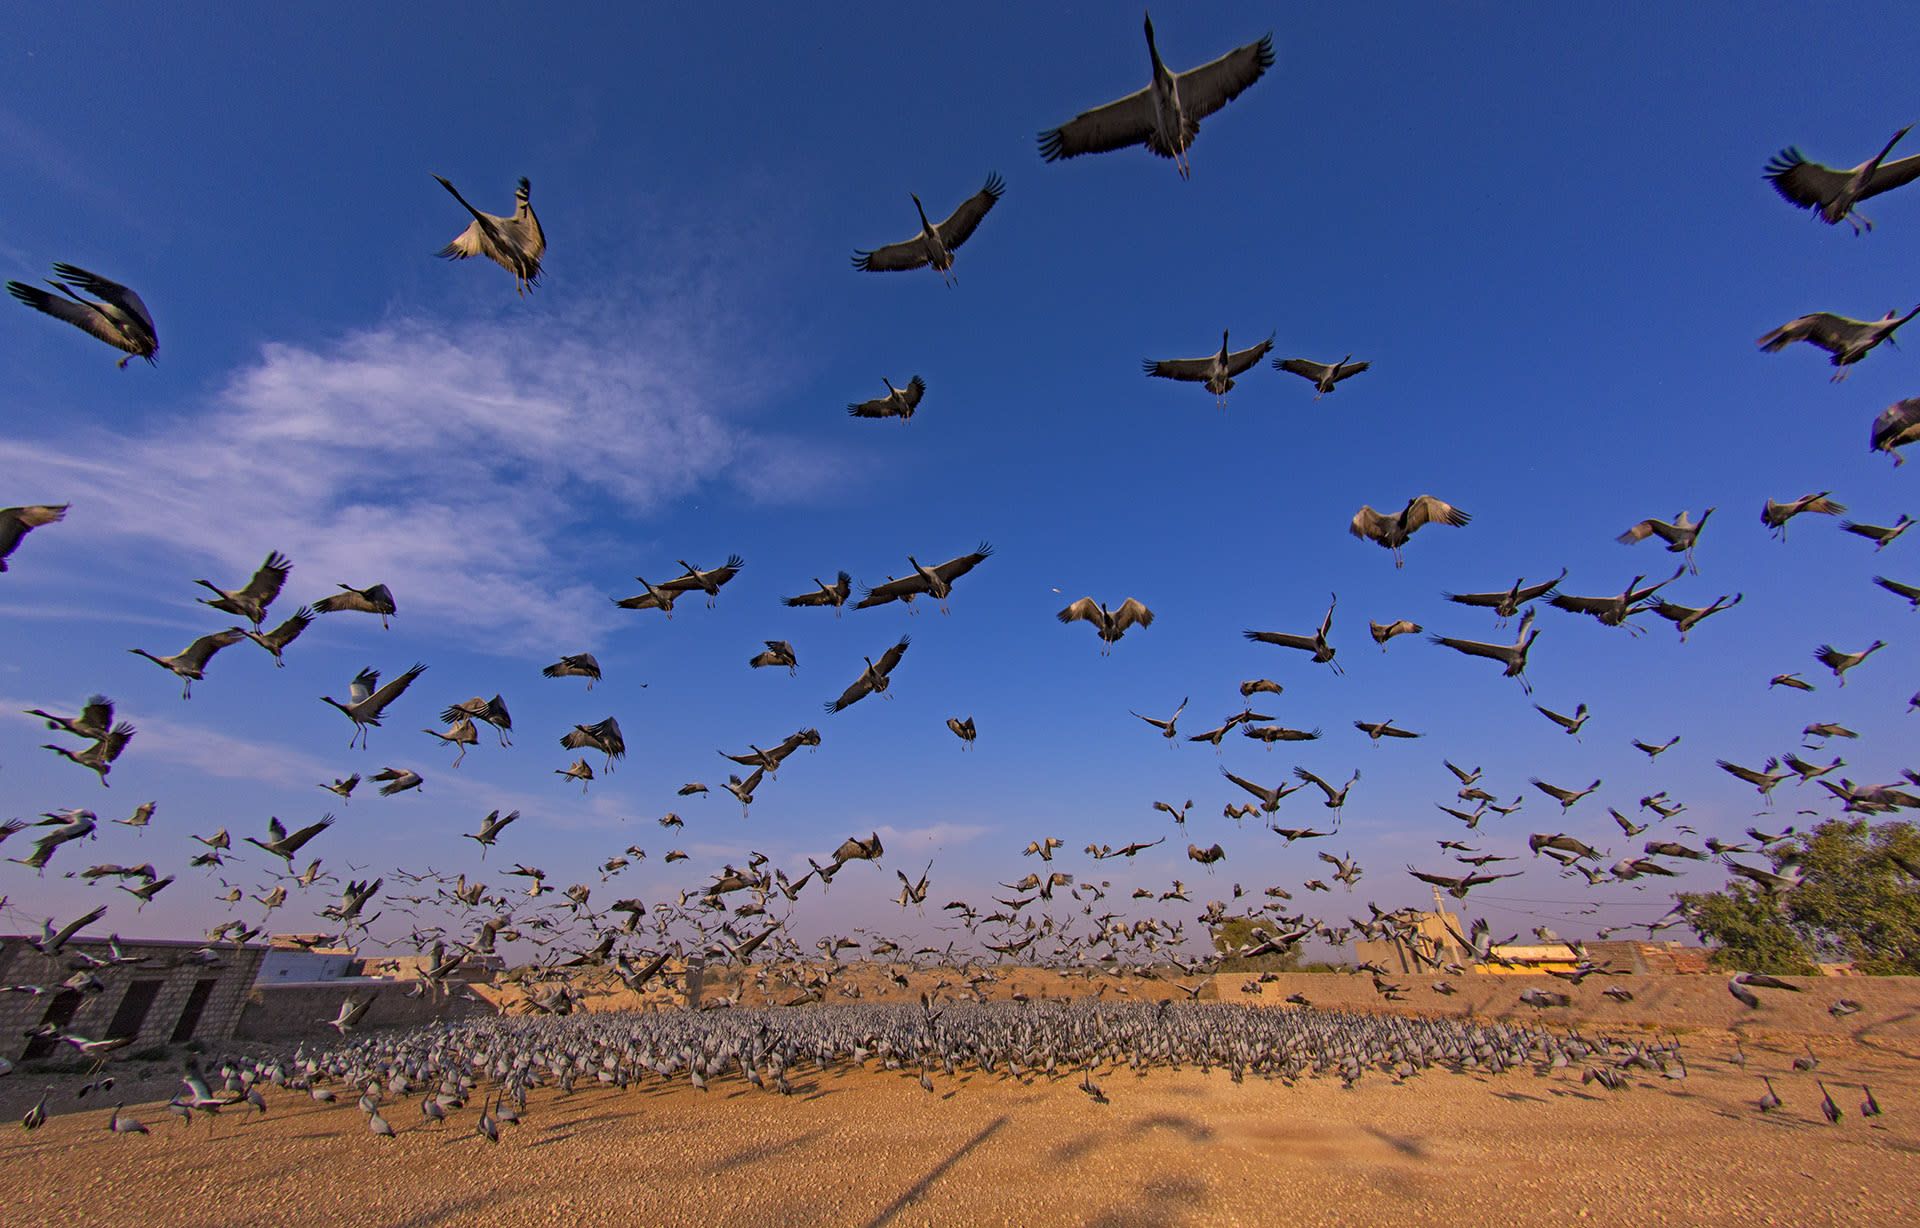 """At the heart of the action in Kheechan is the bird feeding house, where volunteers arrive every morning to scatter grain for the birds. By breakfast time, the compound is filled with demoiselle cranes, emitting loud, honking calls. """"It is very crowded,"""" says wildlife photographer Dhritiman Mukherjee. """"But there is no conflict between the birds, no fighting, or pecking at each other. They are quite peaceful."""""""